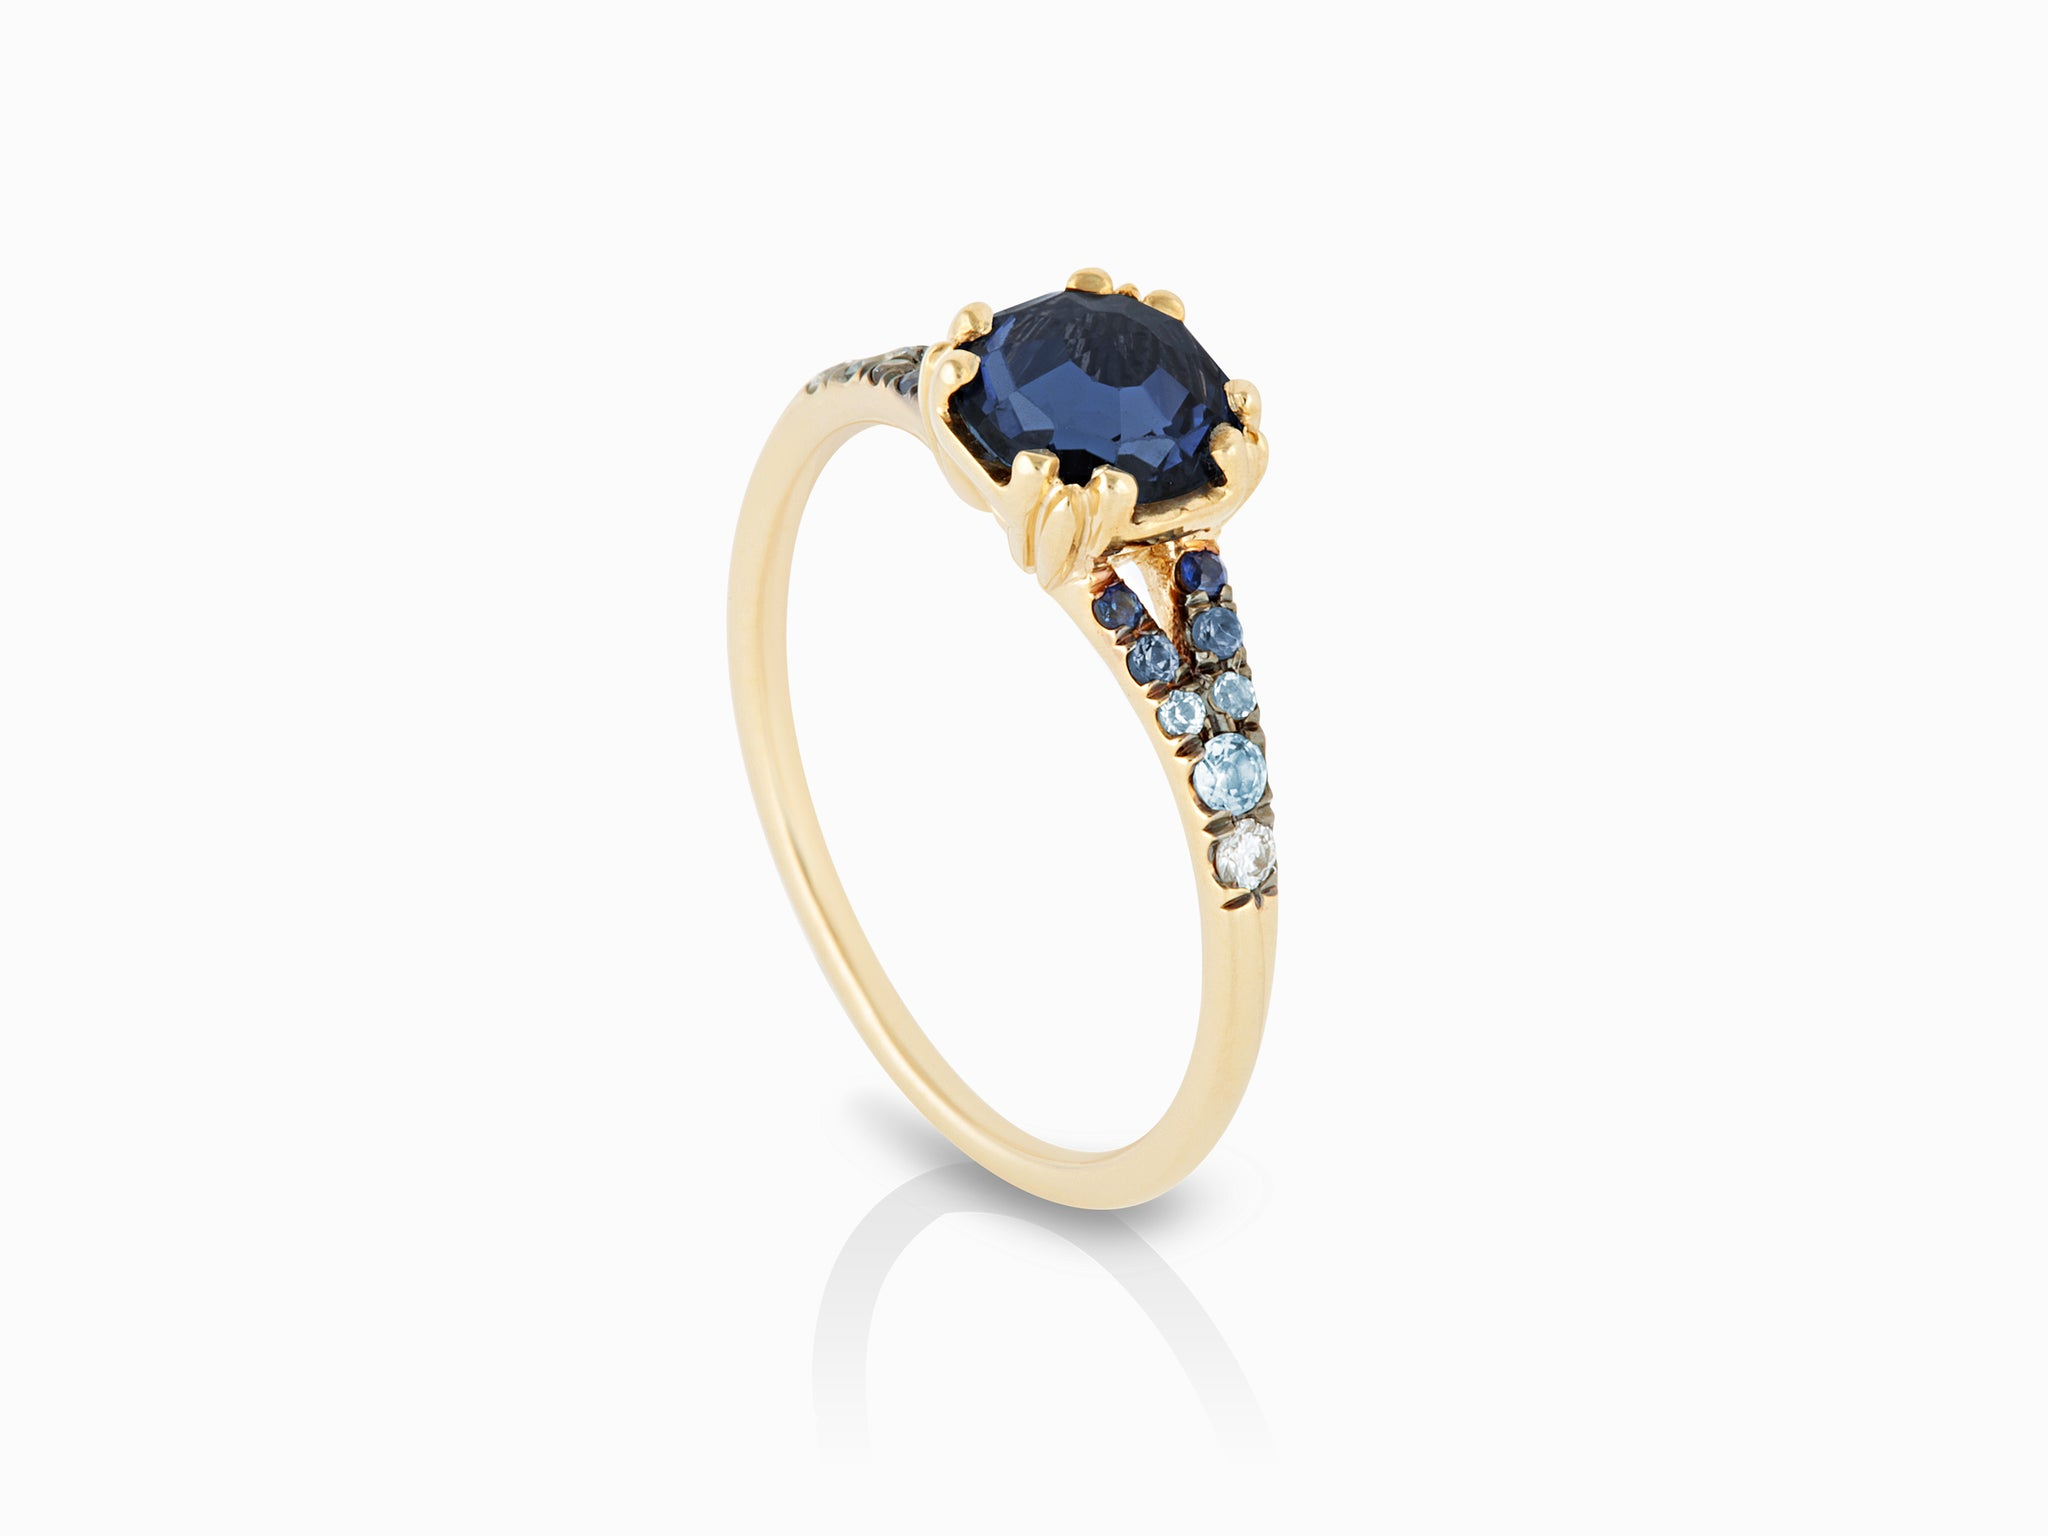 sapphire devotion yellowgold side maniamania solitaire ring yellow bluesapphire blue devotionsolitairering midnight products gold darker